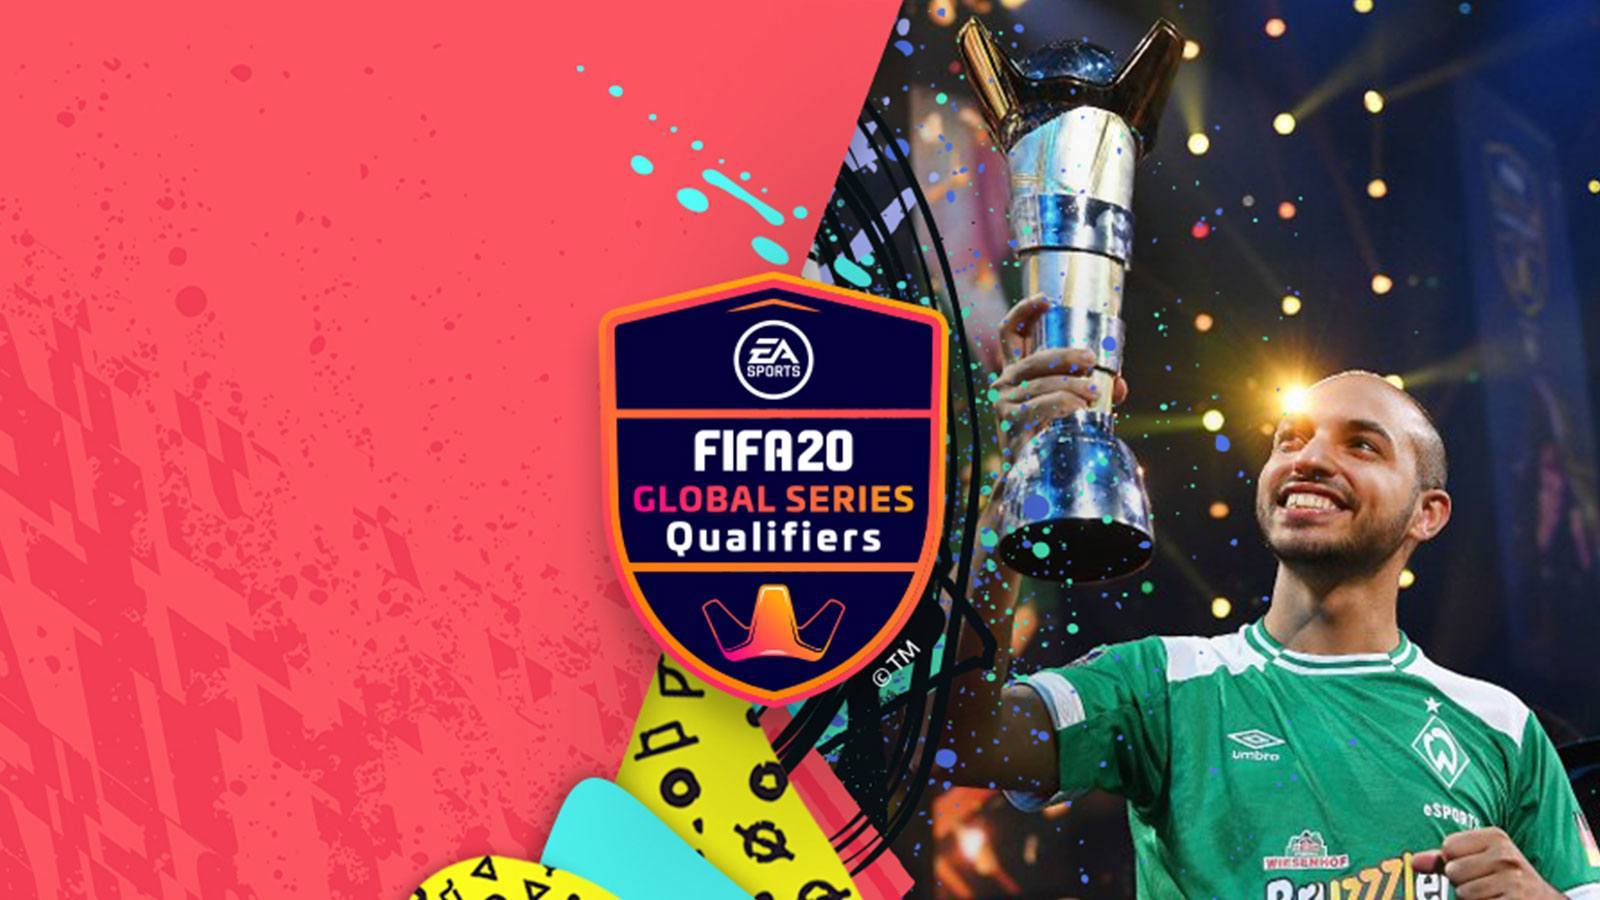 EA Sports FIFA20 Global Series annulés Coronavirus